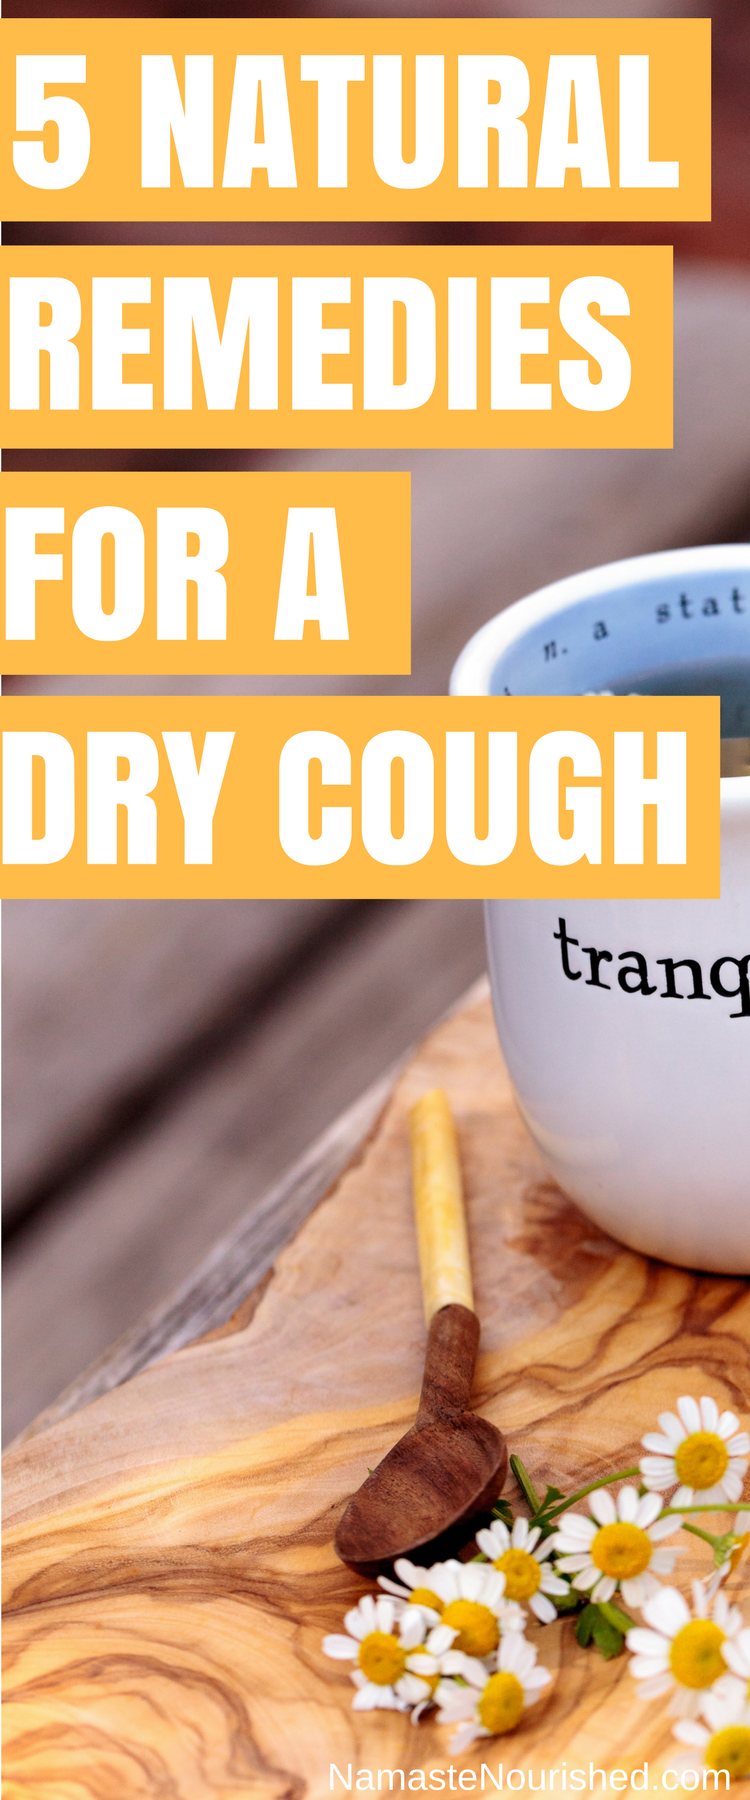 5 Best Remedies for a Dry Cough Natural cough remedies